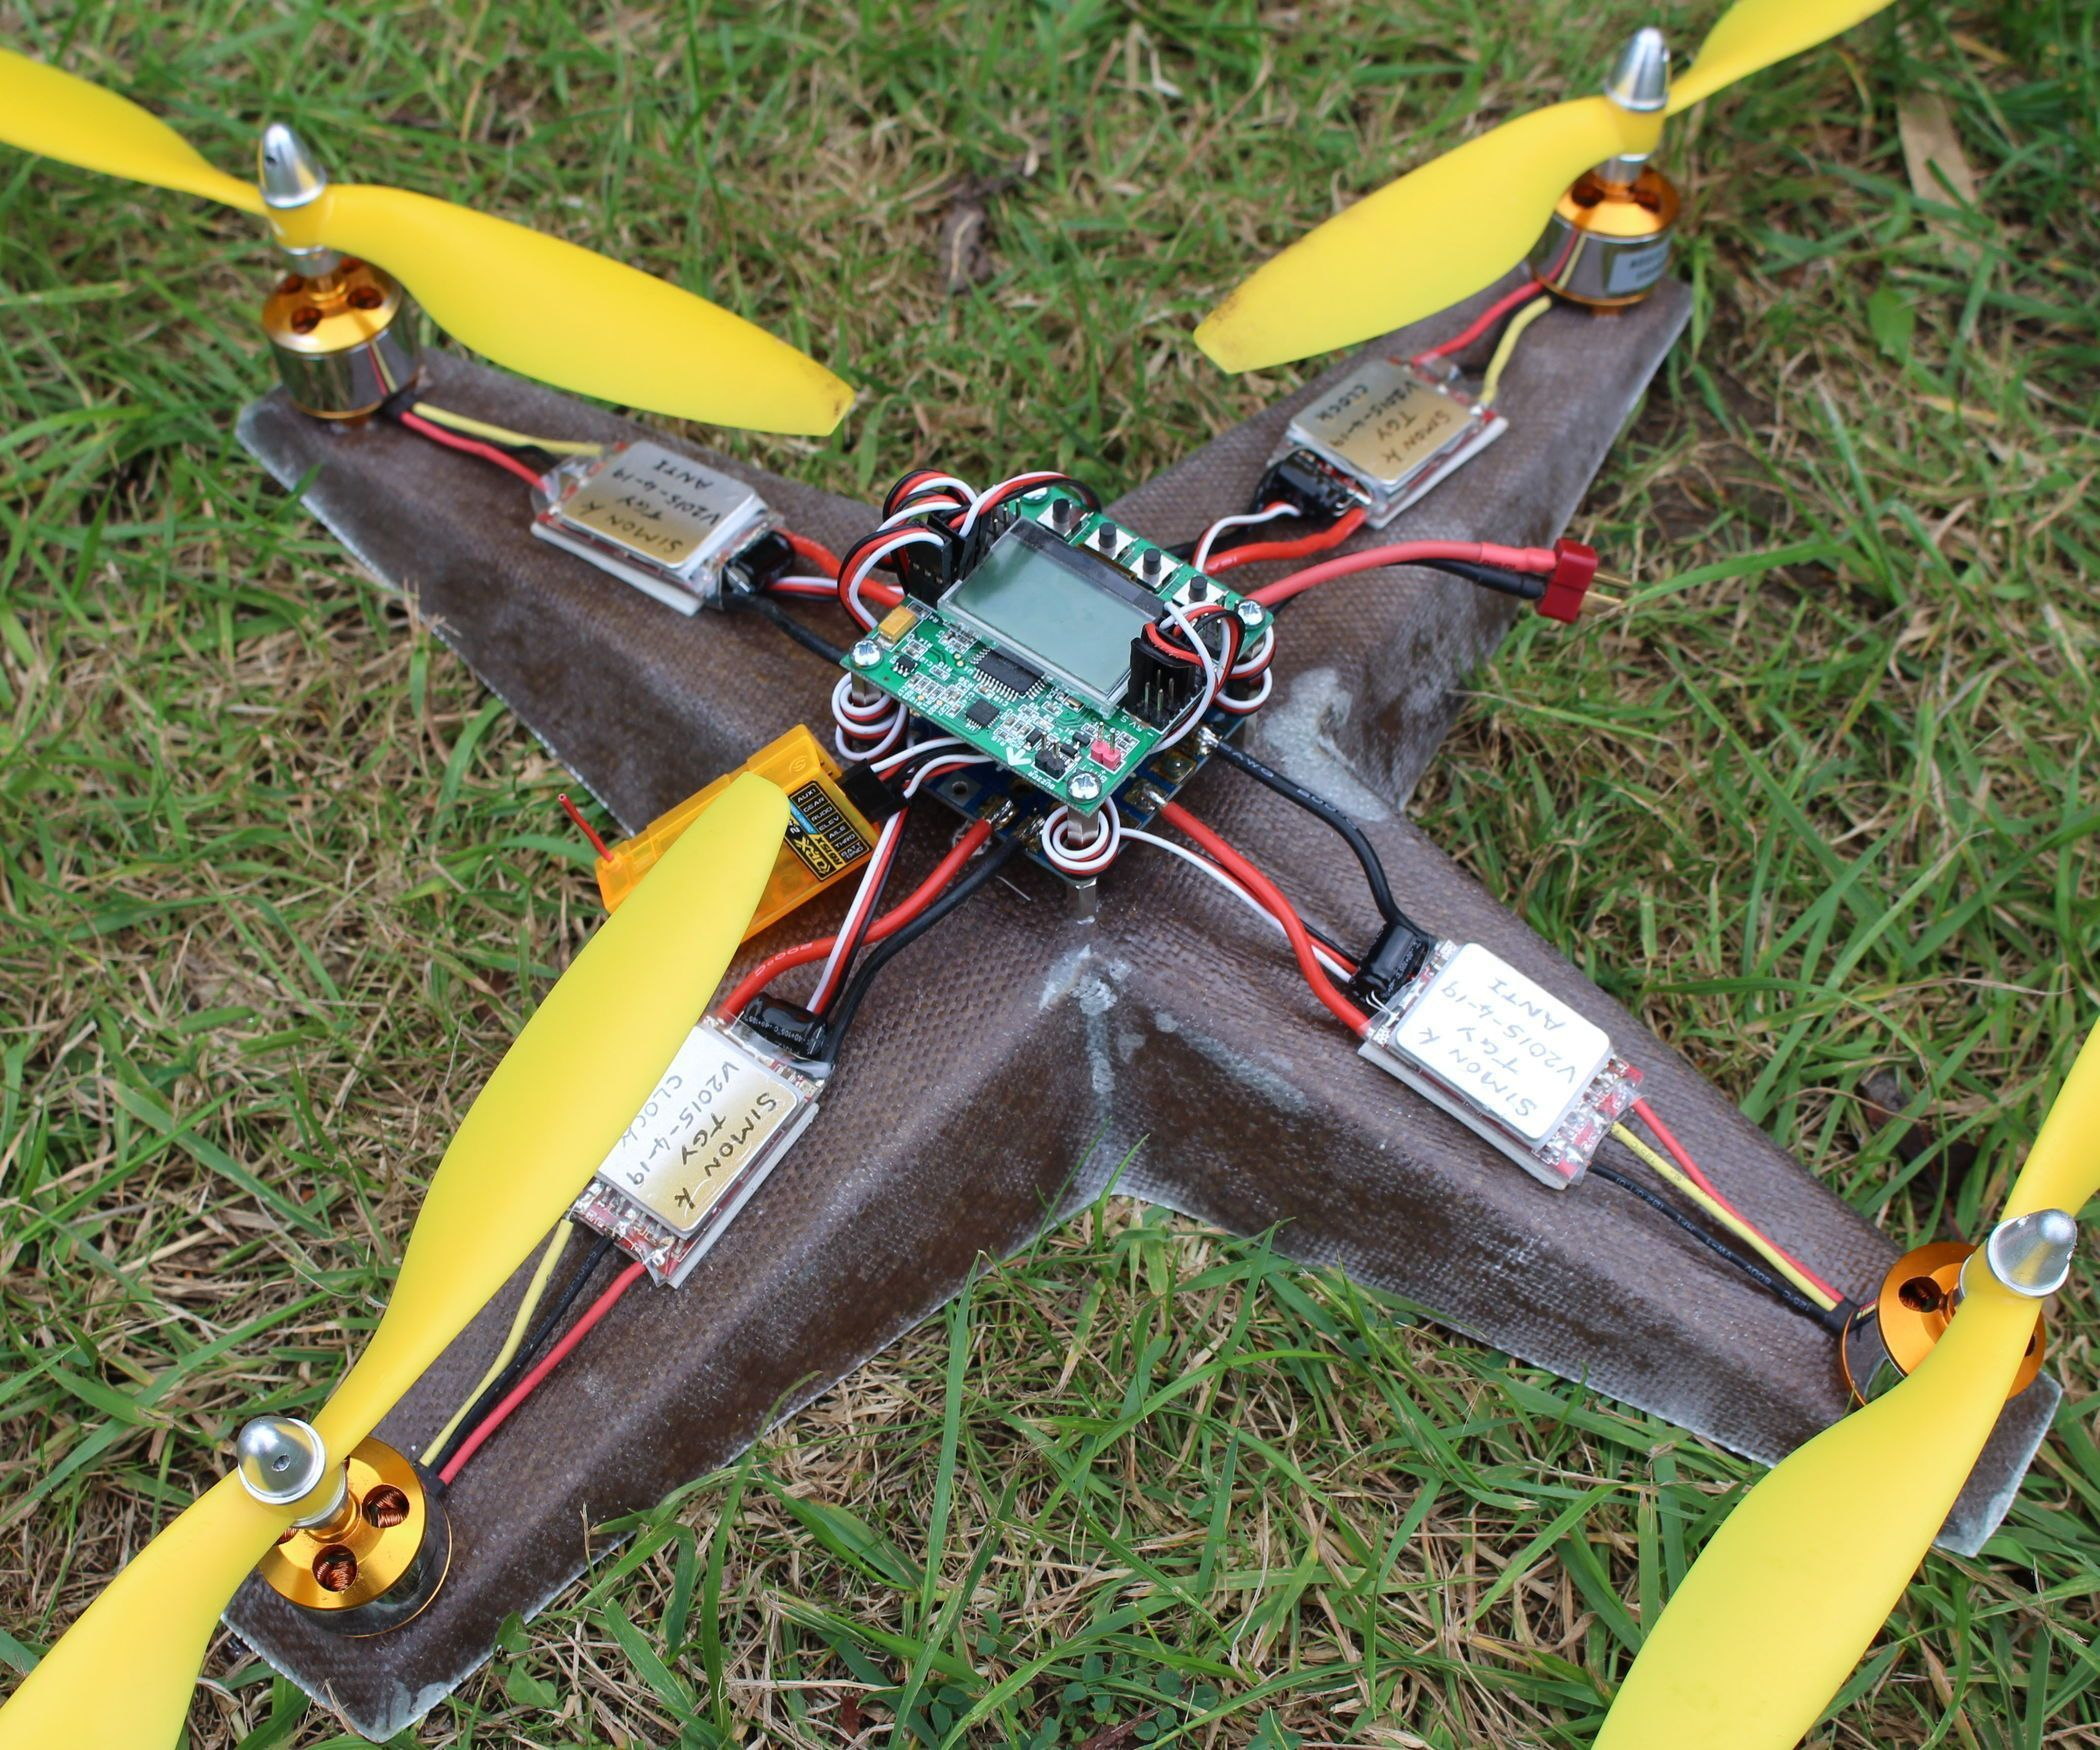 how to make a drone with cardboard